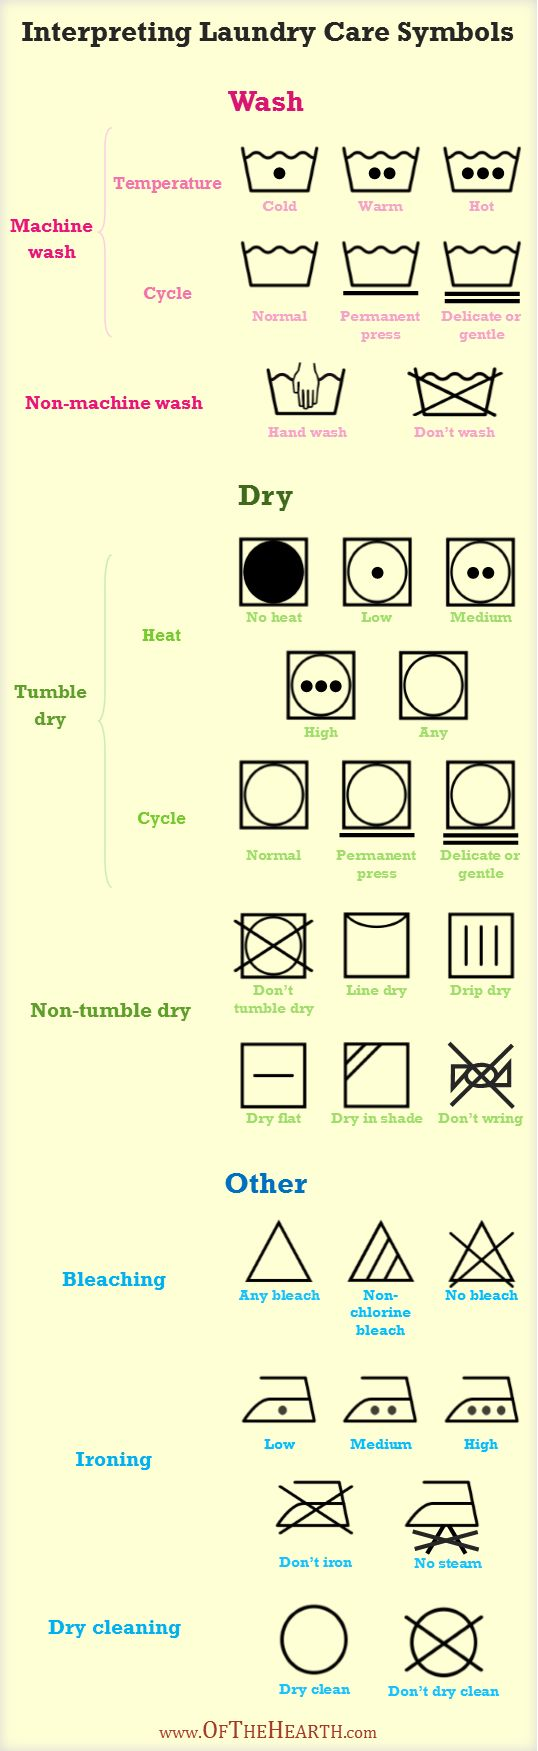 The washing instructions for your clothes may be expressed in seemingly confusing symbols. Decode these symbols with this printable laundry care symbol guide.